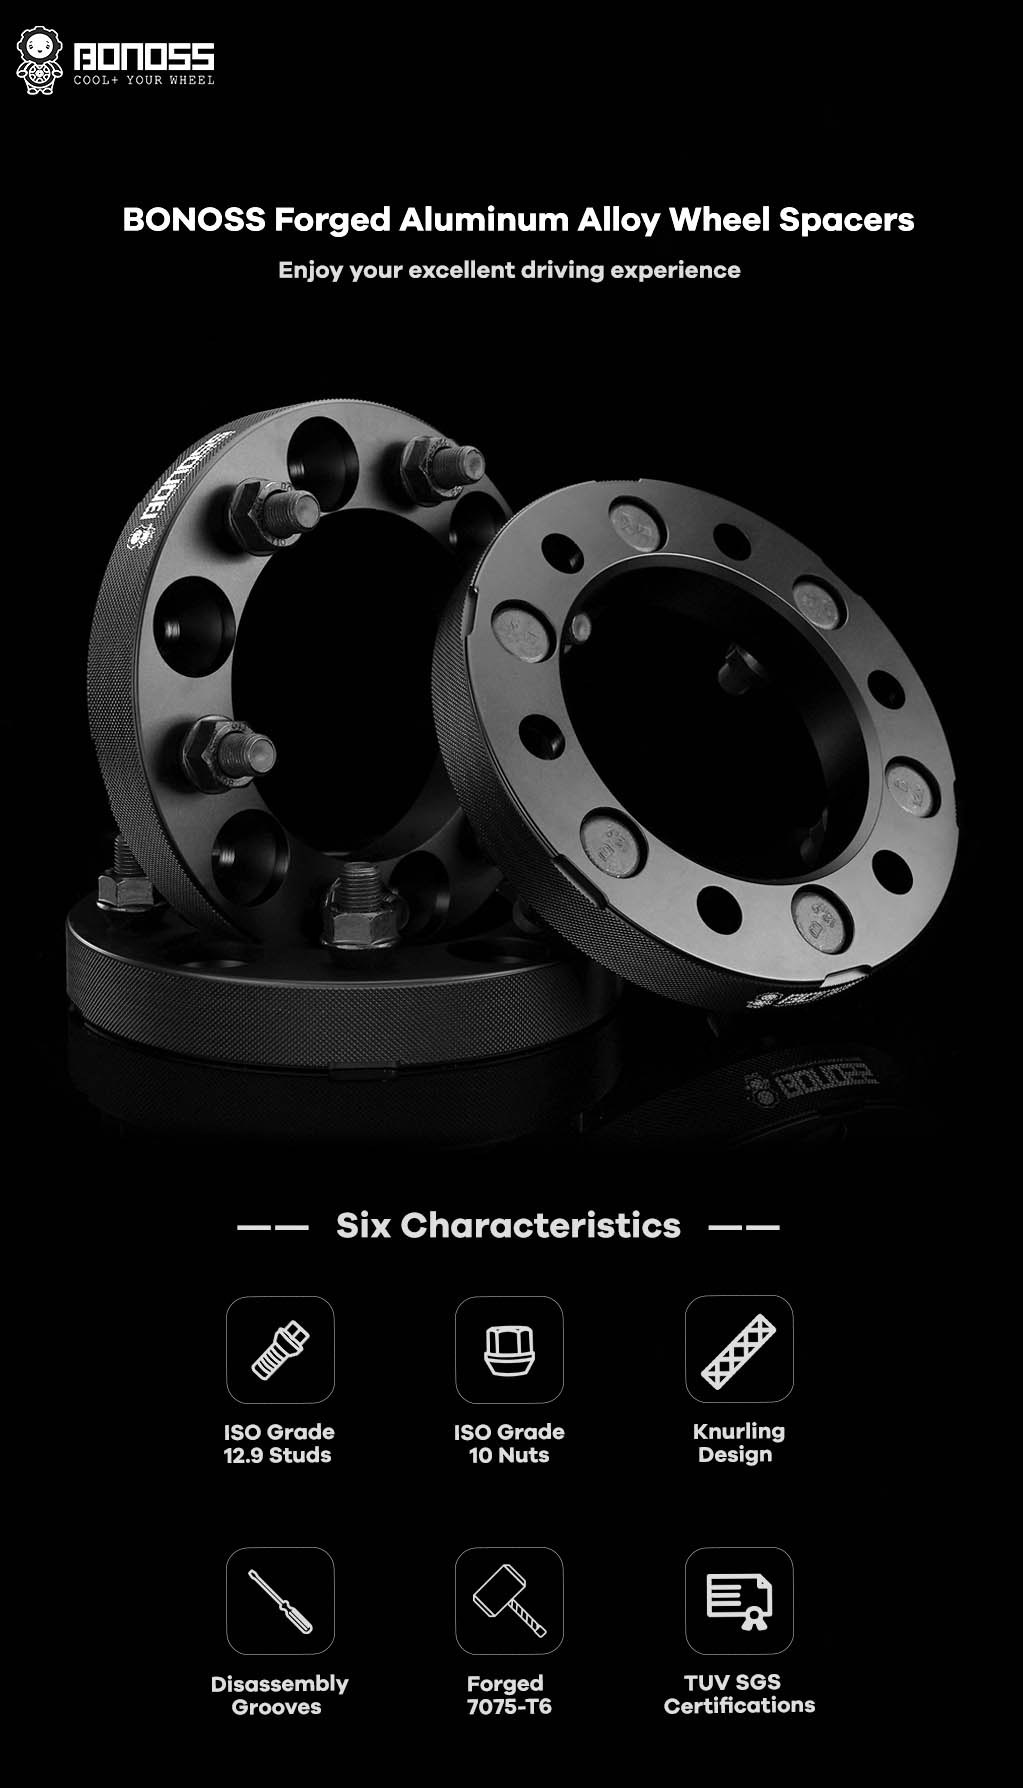 AL7075-T6 BONOSS-forged-active-cooling-wheel-spacer-6X139.7-110-for ISUZU Trooper-by-lulu-1-1